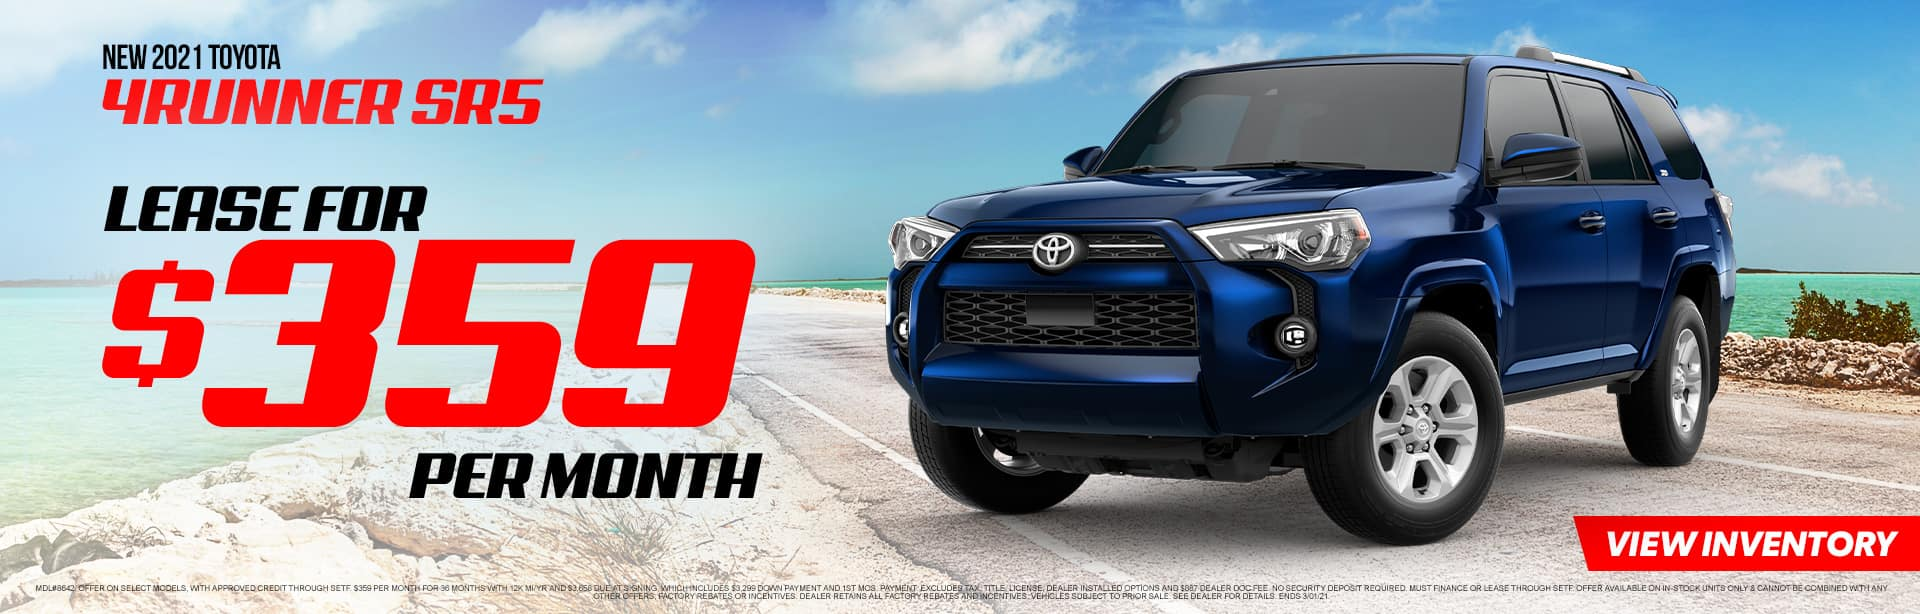 NEW 2021 TOYOTA 4RUNNER SR5 | THE YEAR OF THE TOYOTA